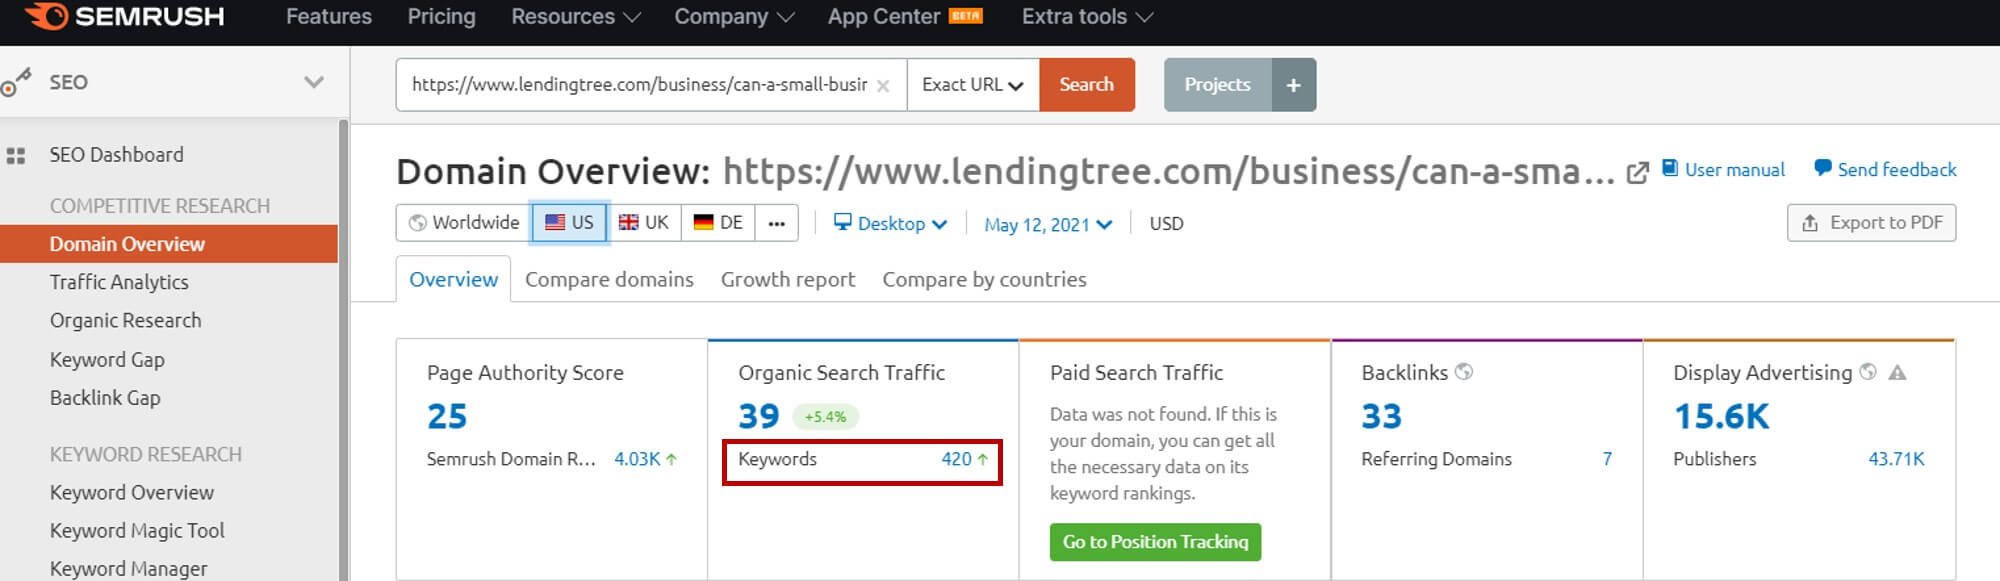 Content Topics from URL Research in SEMRush